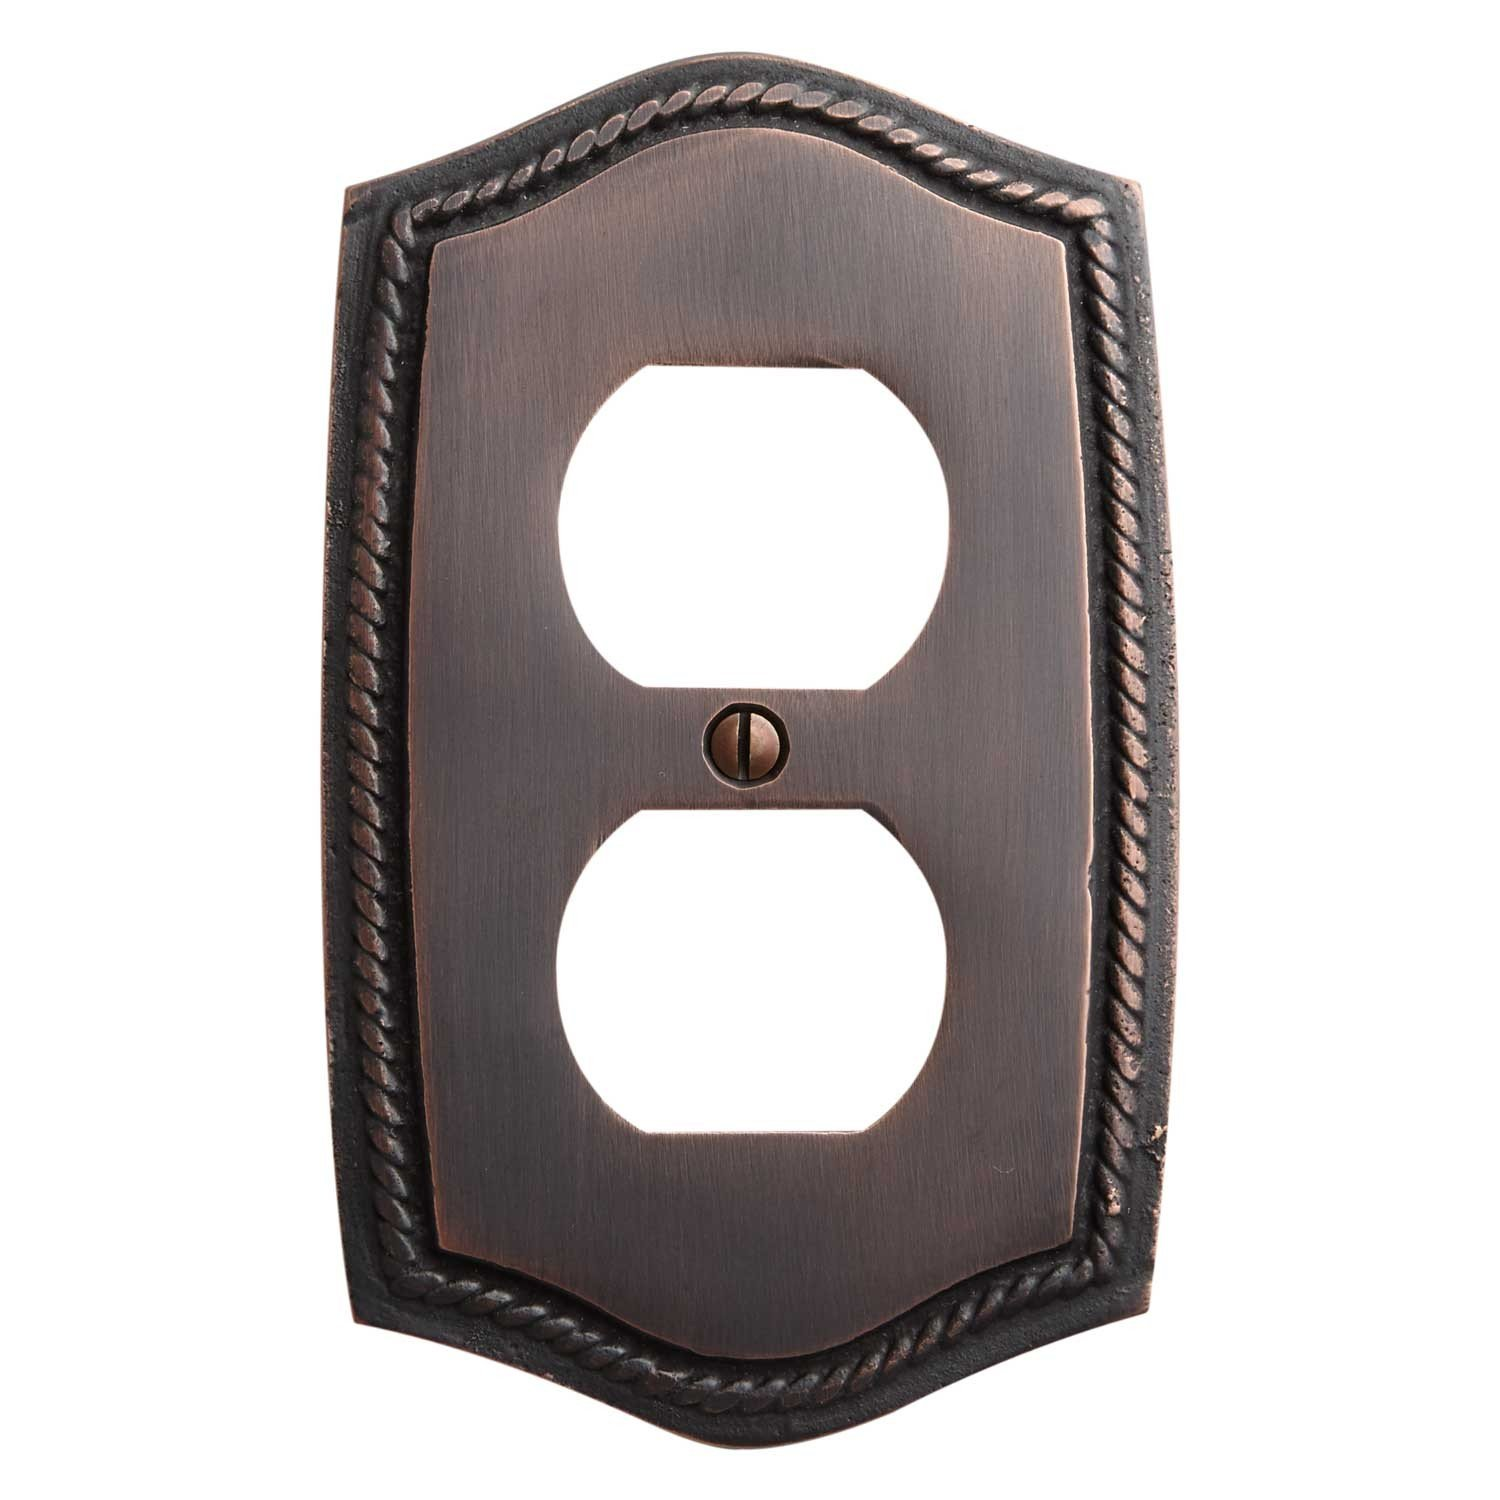 Naiture Georgian Design Solid Brass Single Duplex Outlet Cover, Wall Plate, Switch Plate, Oil Rubbed Bronze Finish